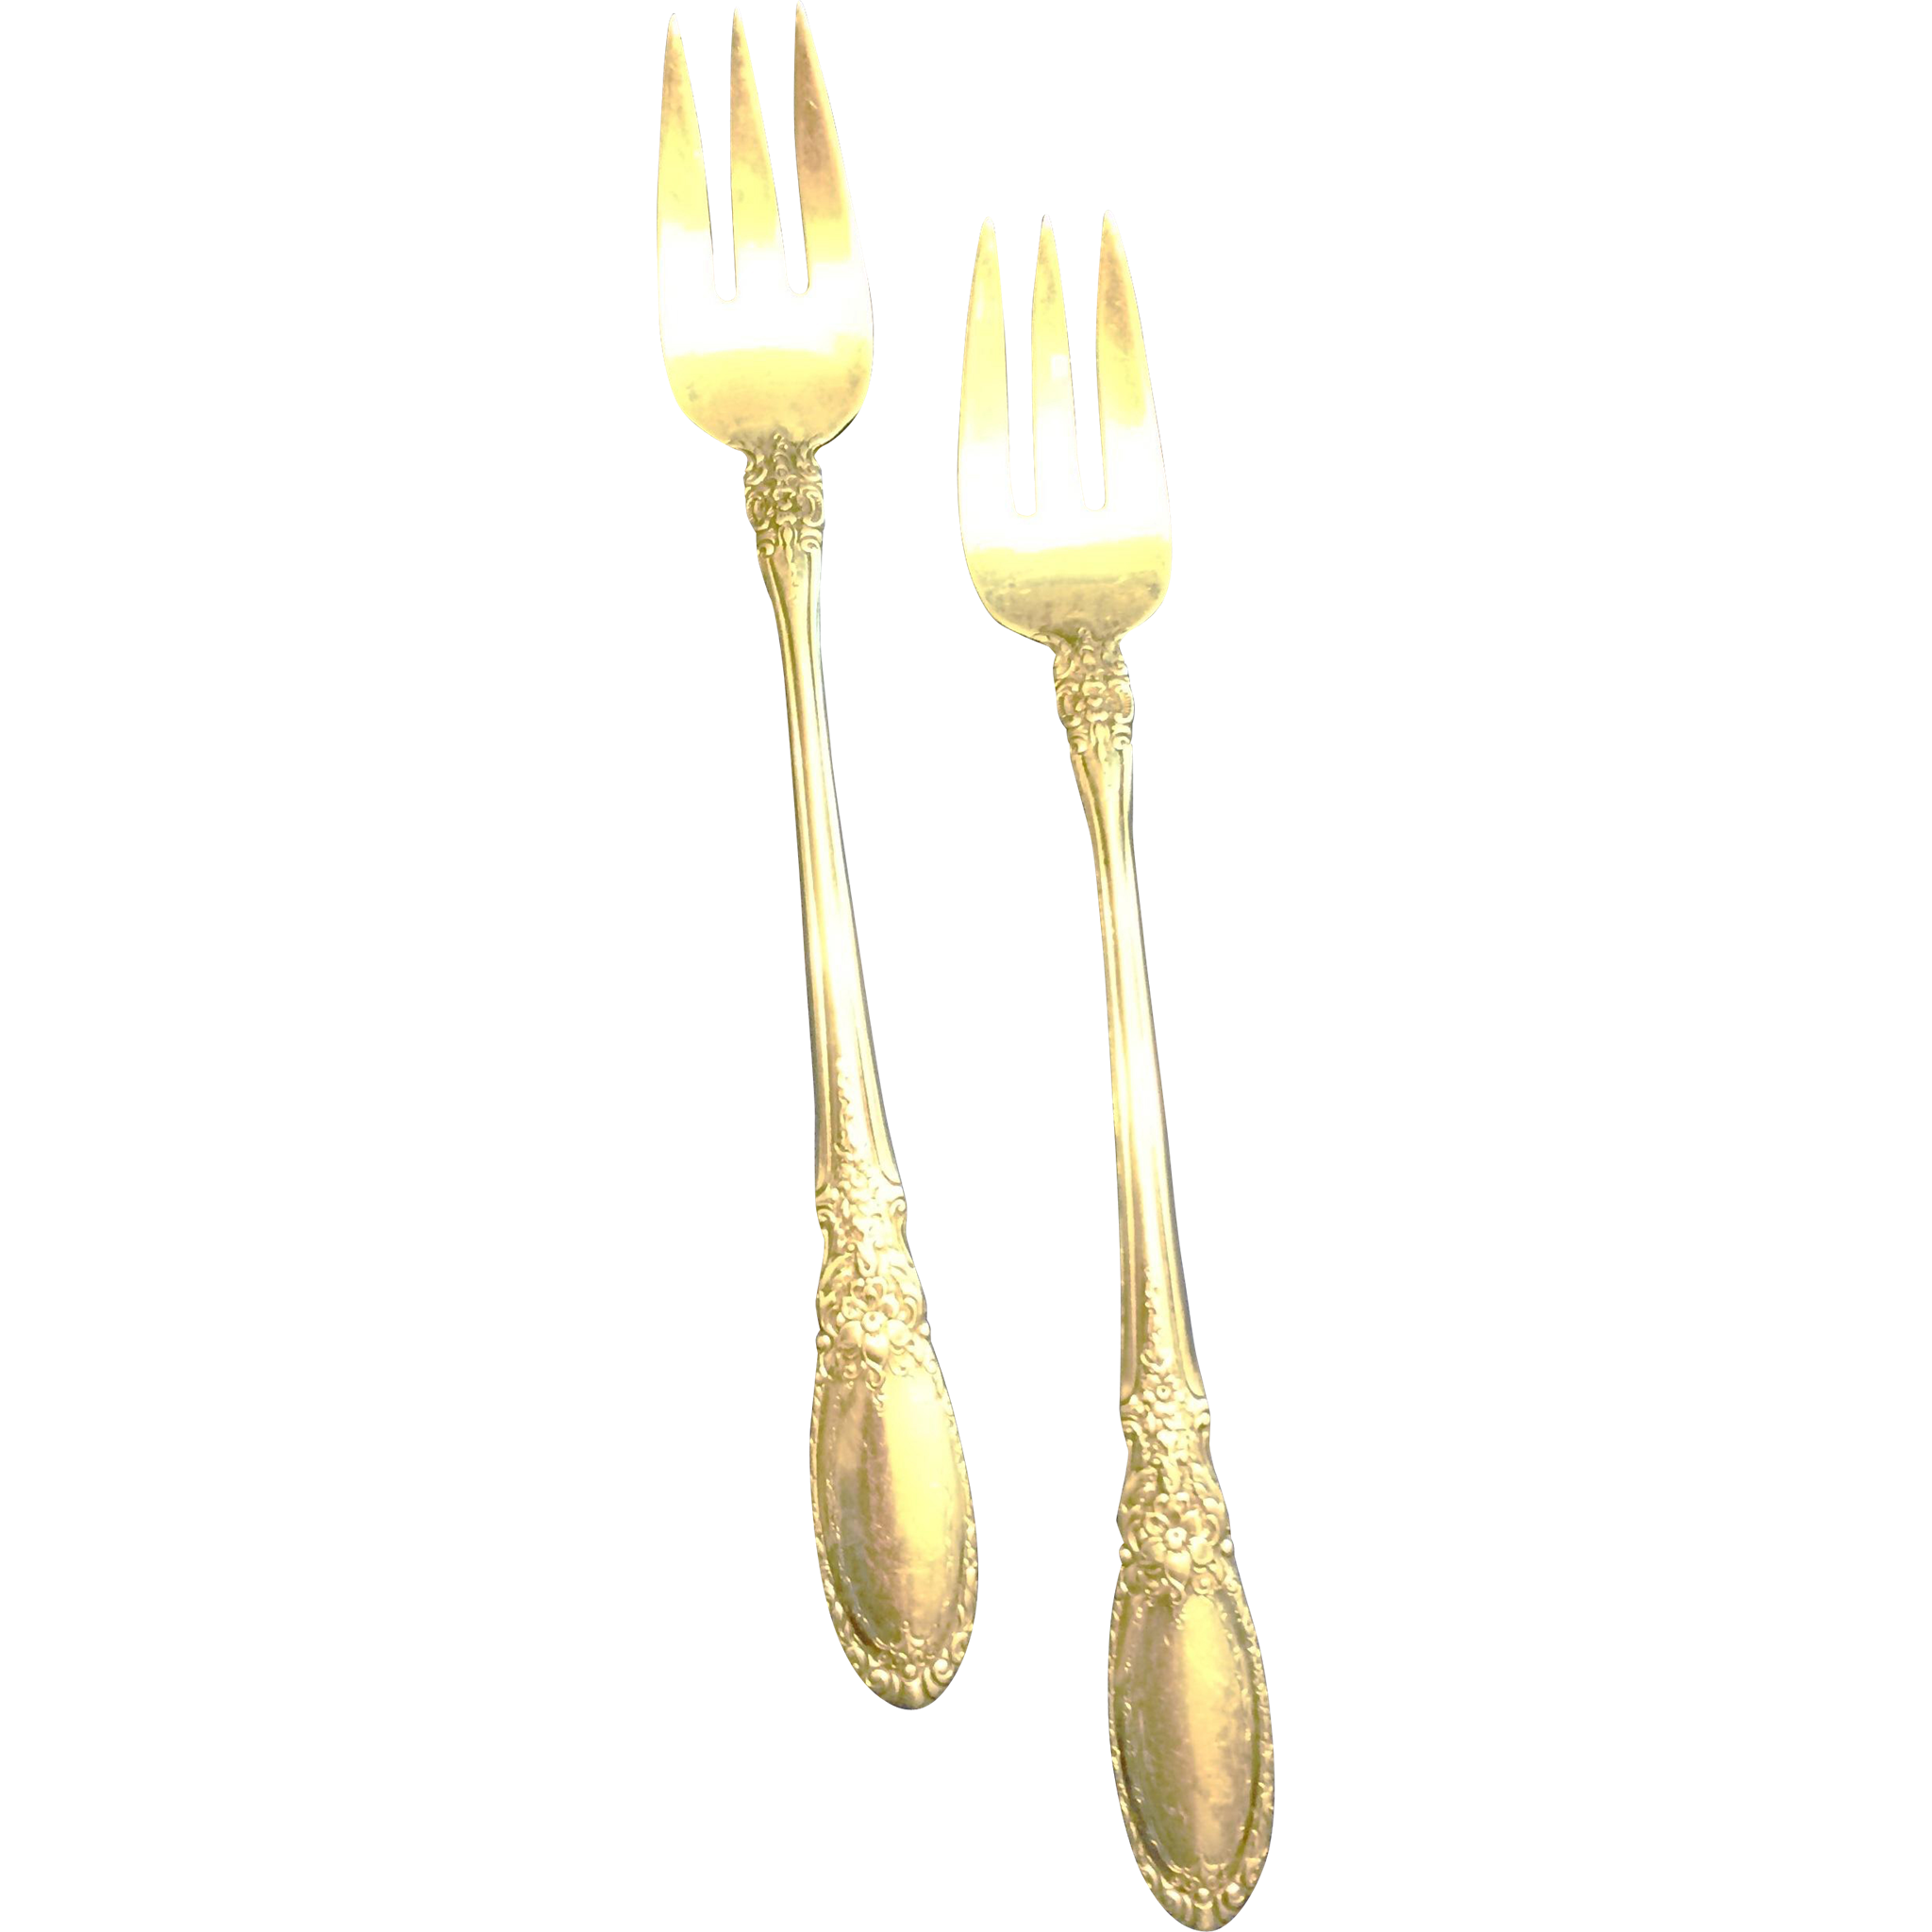 2 Towle Sterling Cocktail Seafood Forks in the Old Mirror pattern